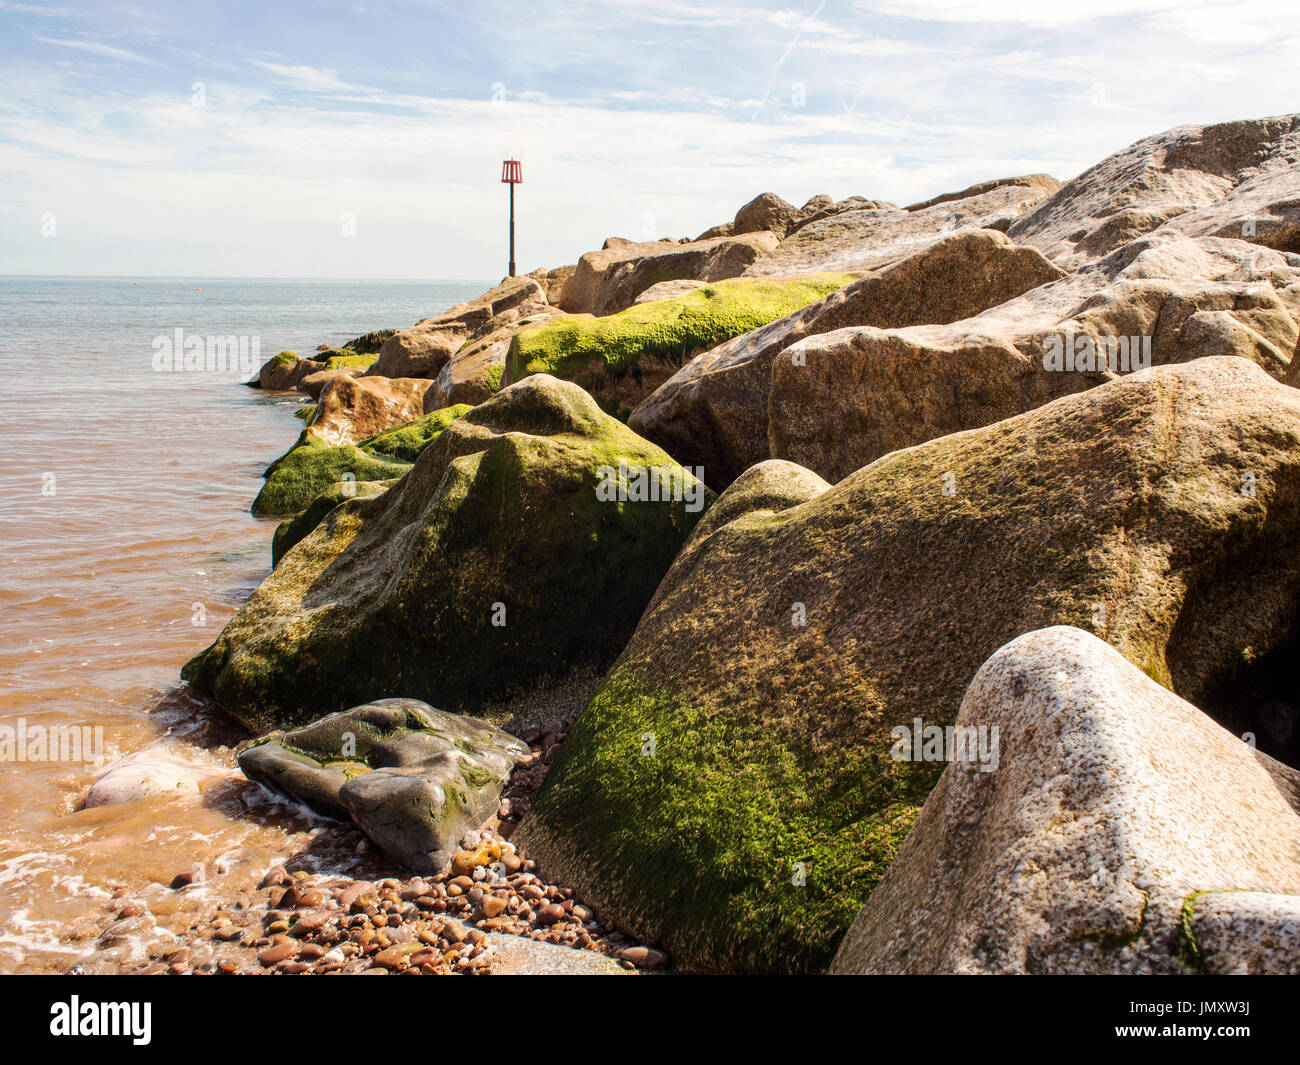 Rock armour groyne protecting the beach at Sidmouth, Devon Stock Photo